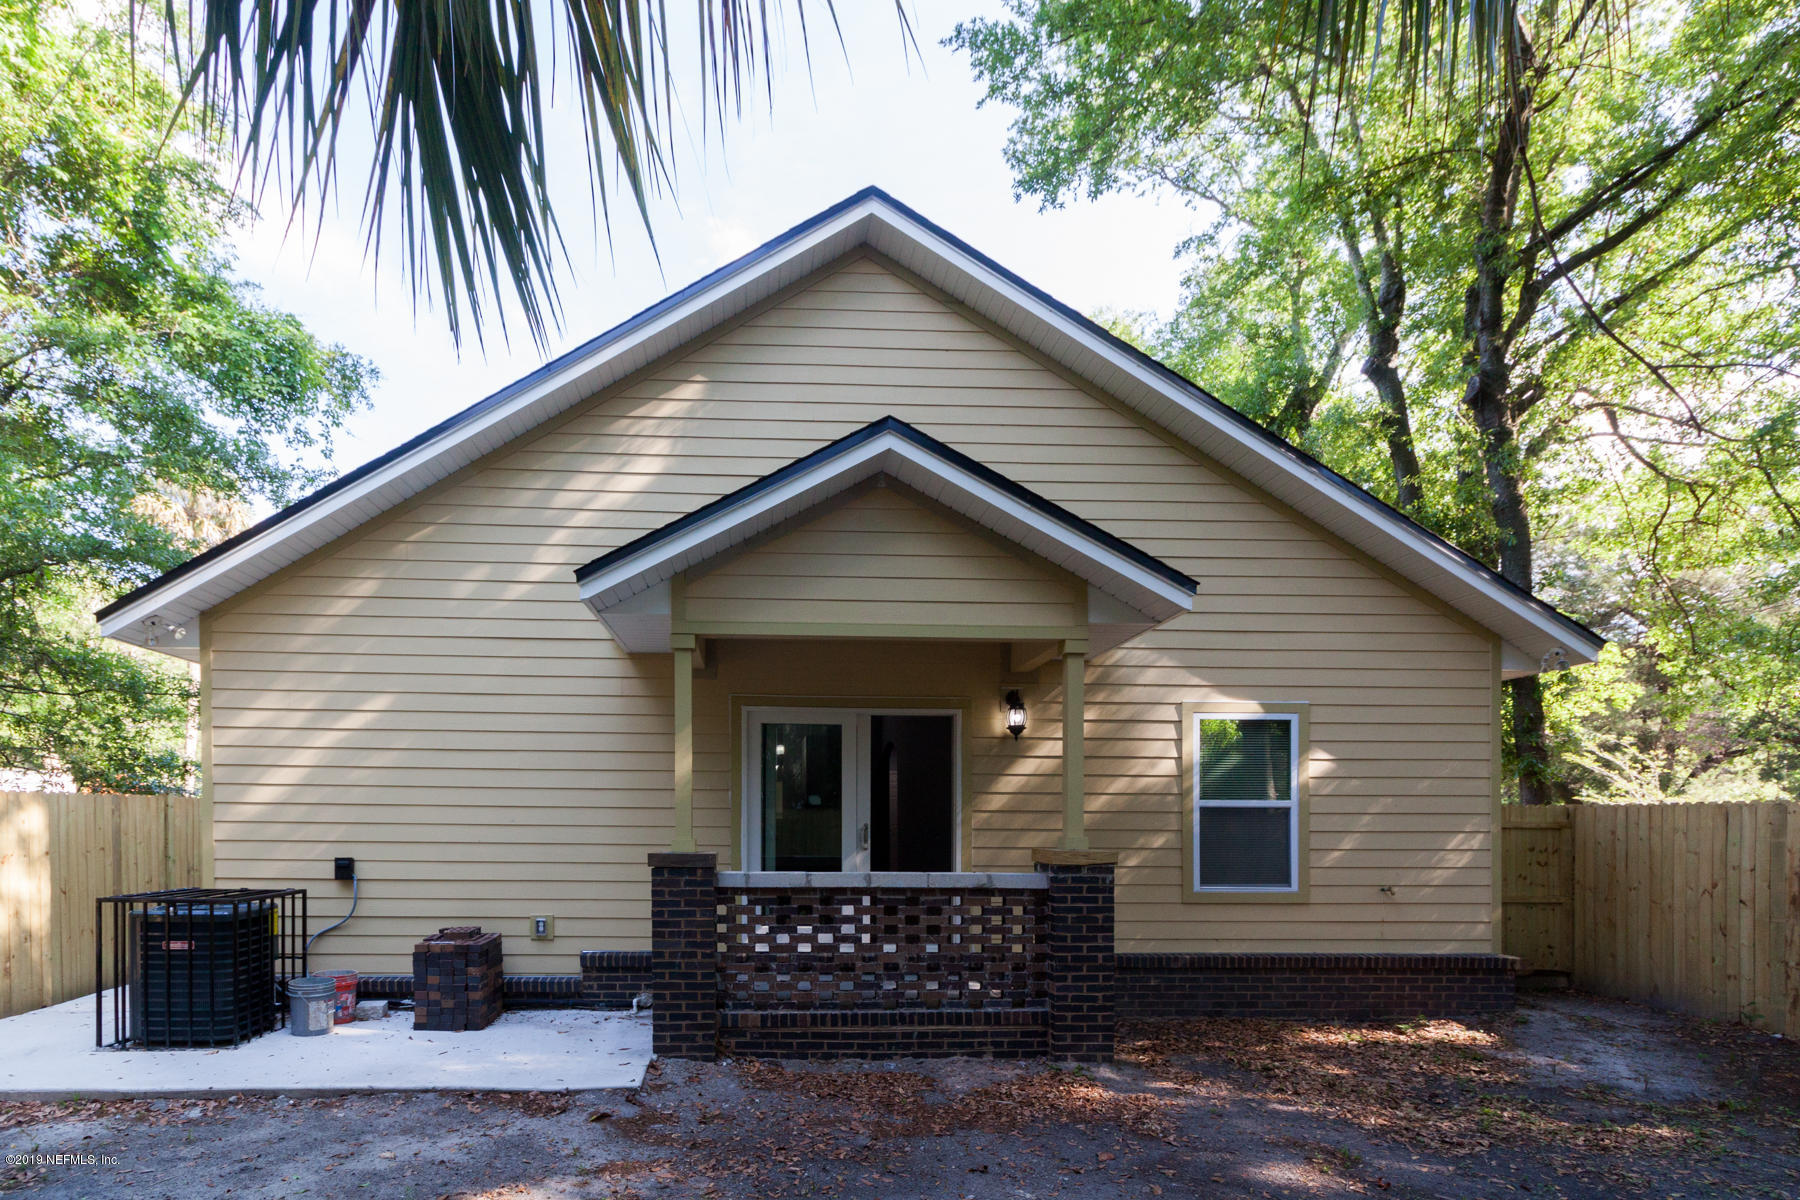 1484 14TH, JACKSONVILLE, FLORIDA 32206, 3 Bedrooms Bedrooms, ,2 BathroomsBathrooms,Residential - single family,For sale,14TH,989762